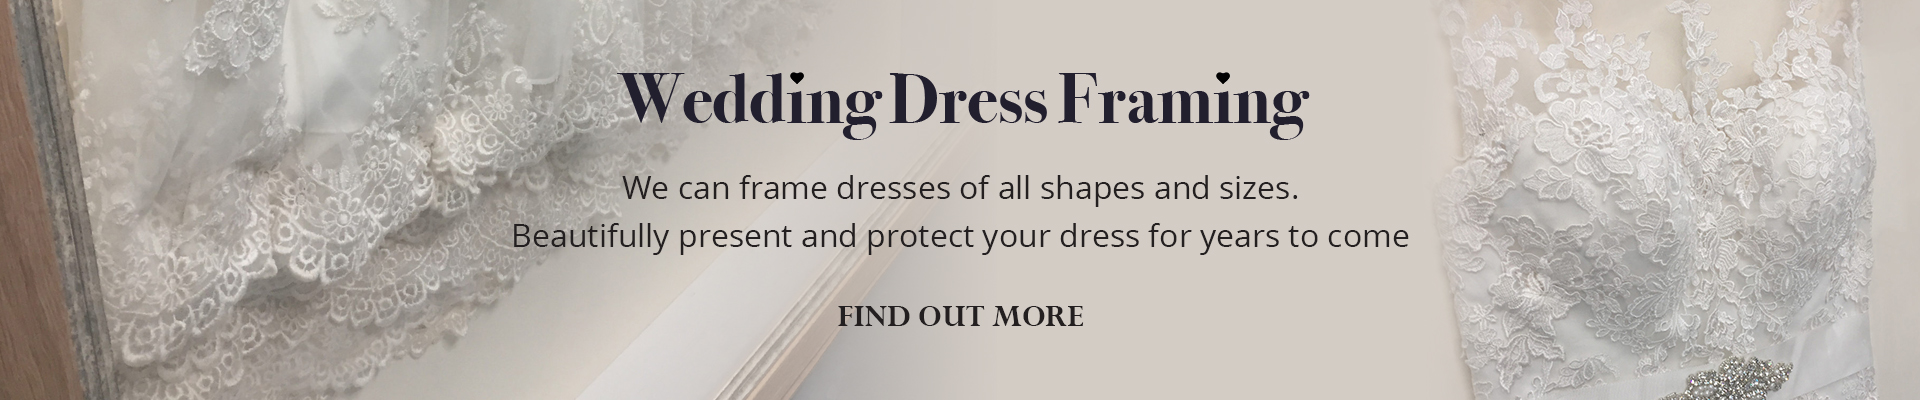 Wedding-dress-framing